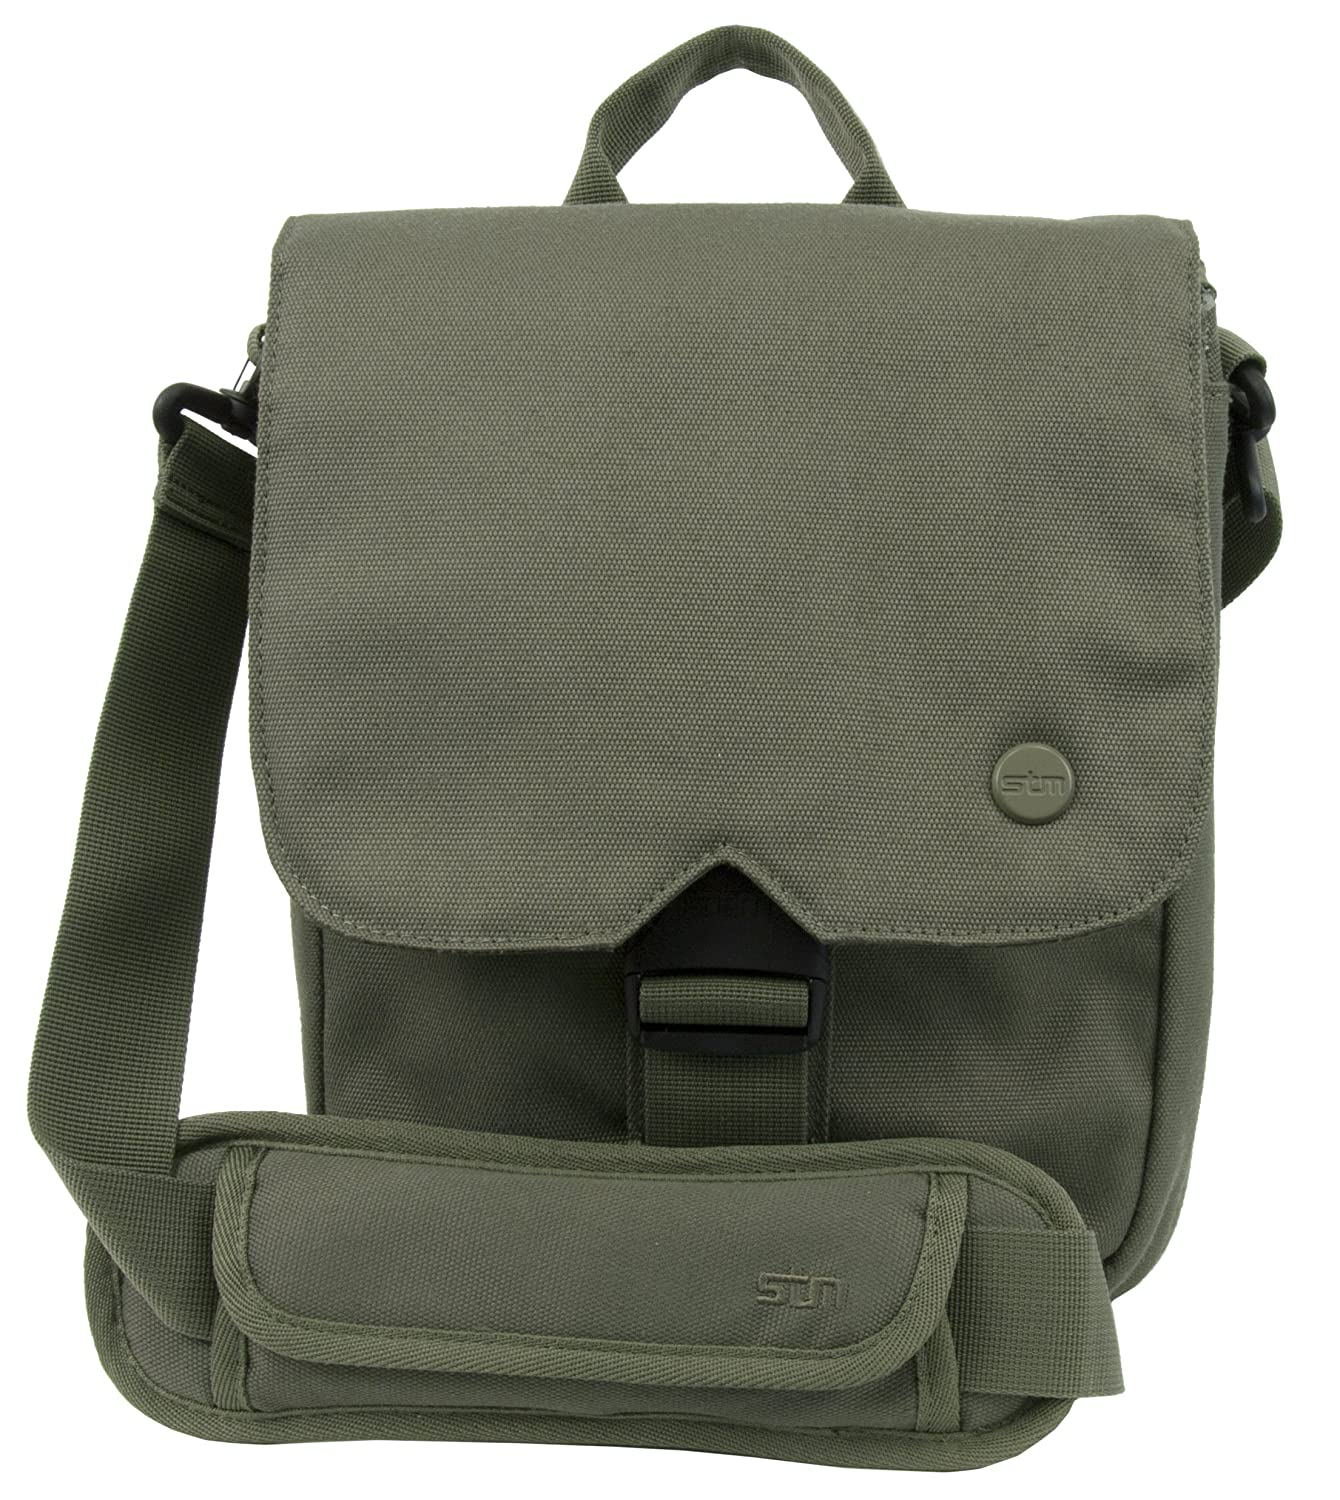 I Pad Shoulder Bag 61